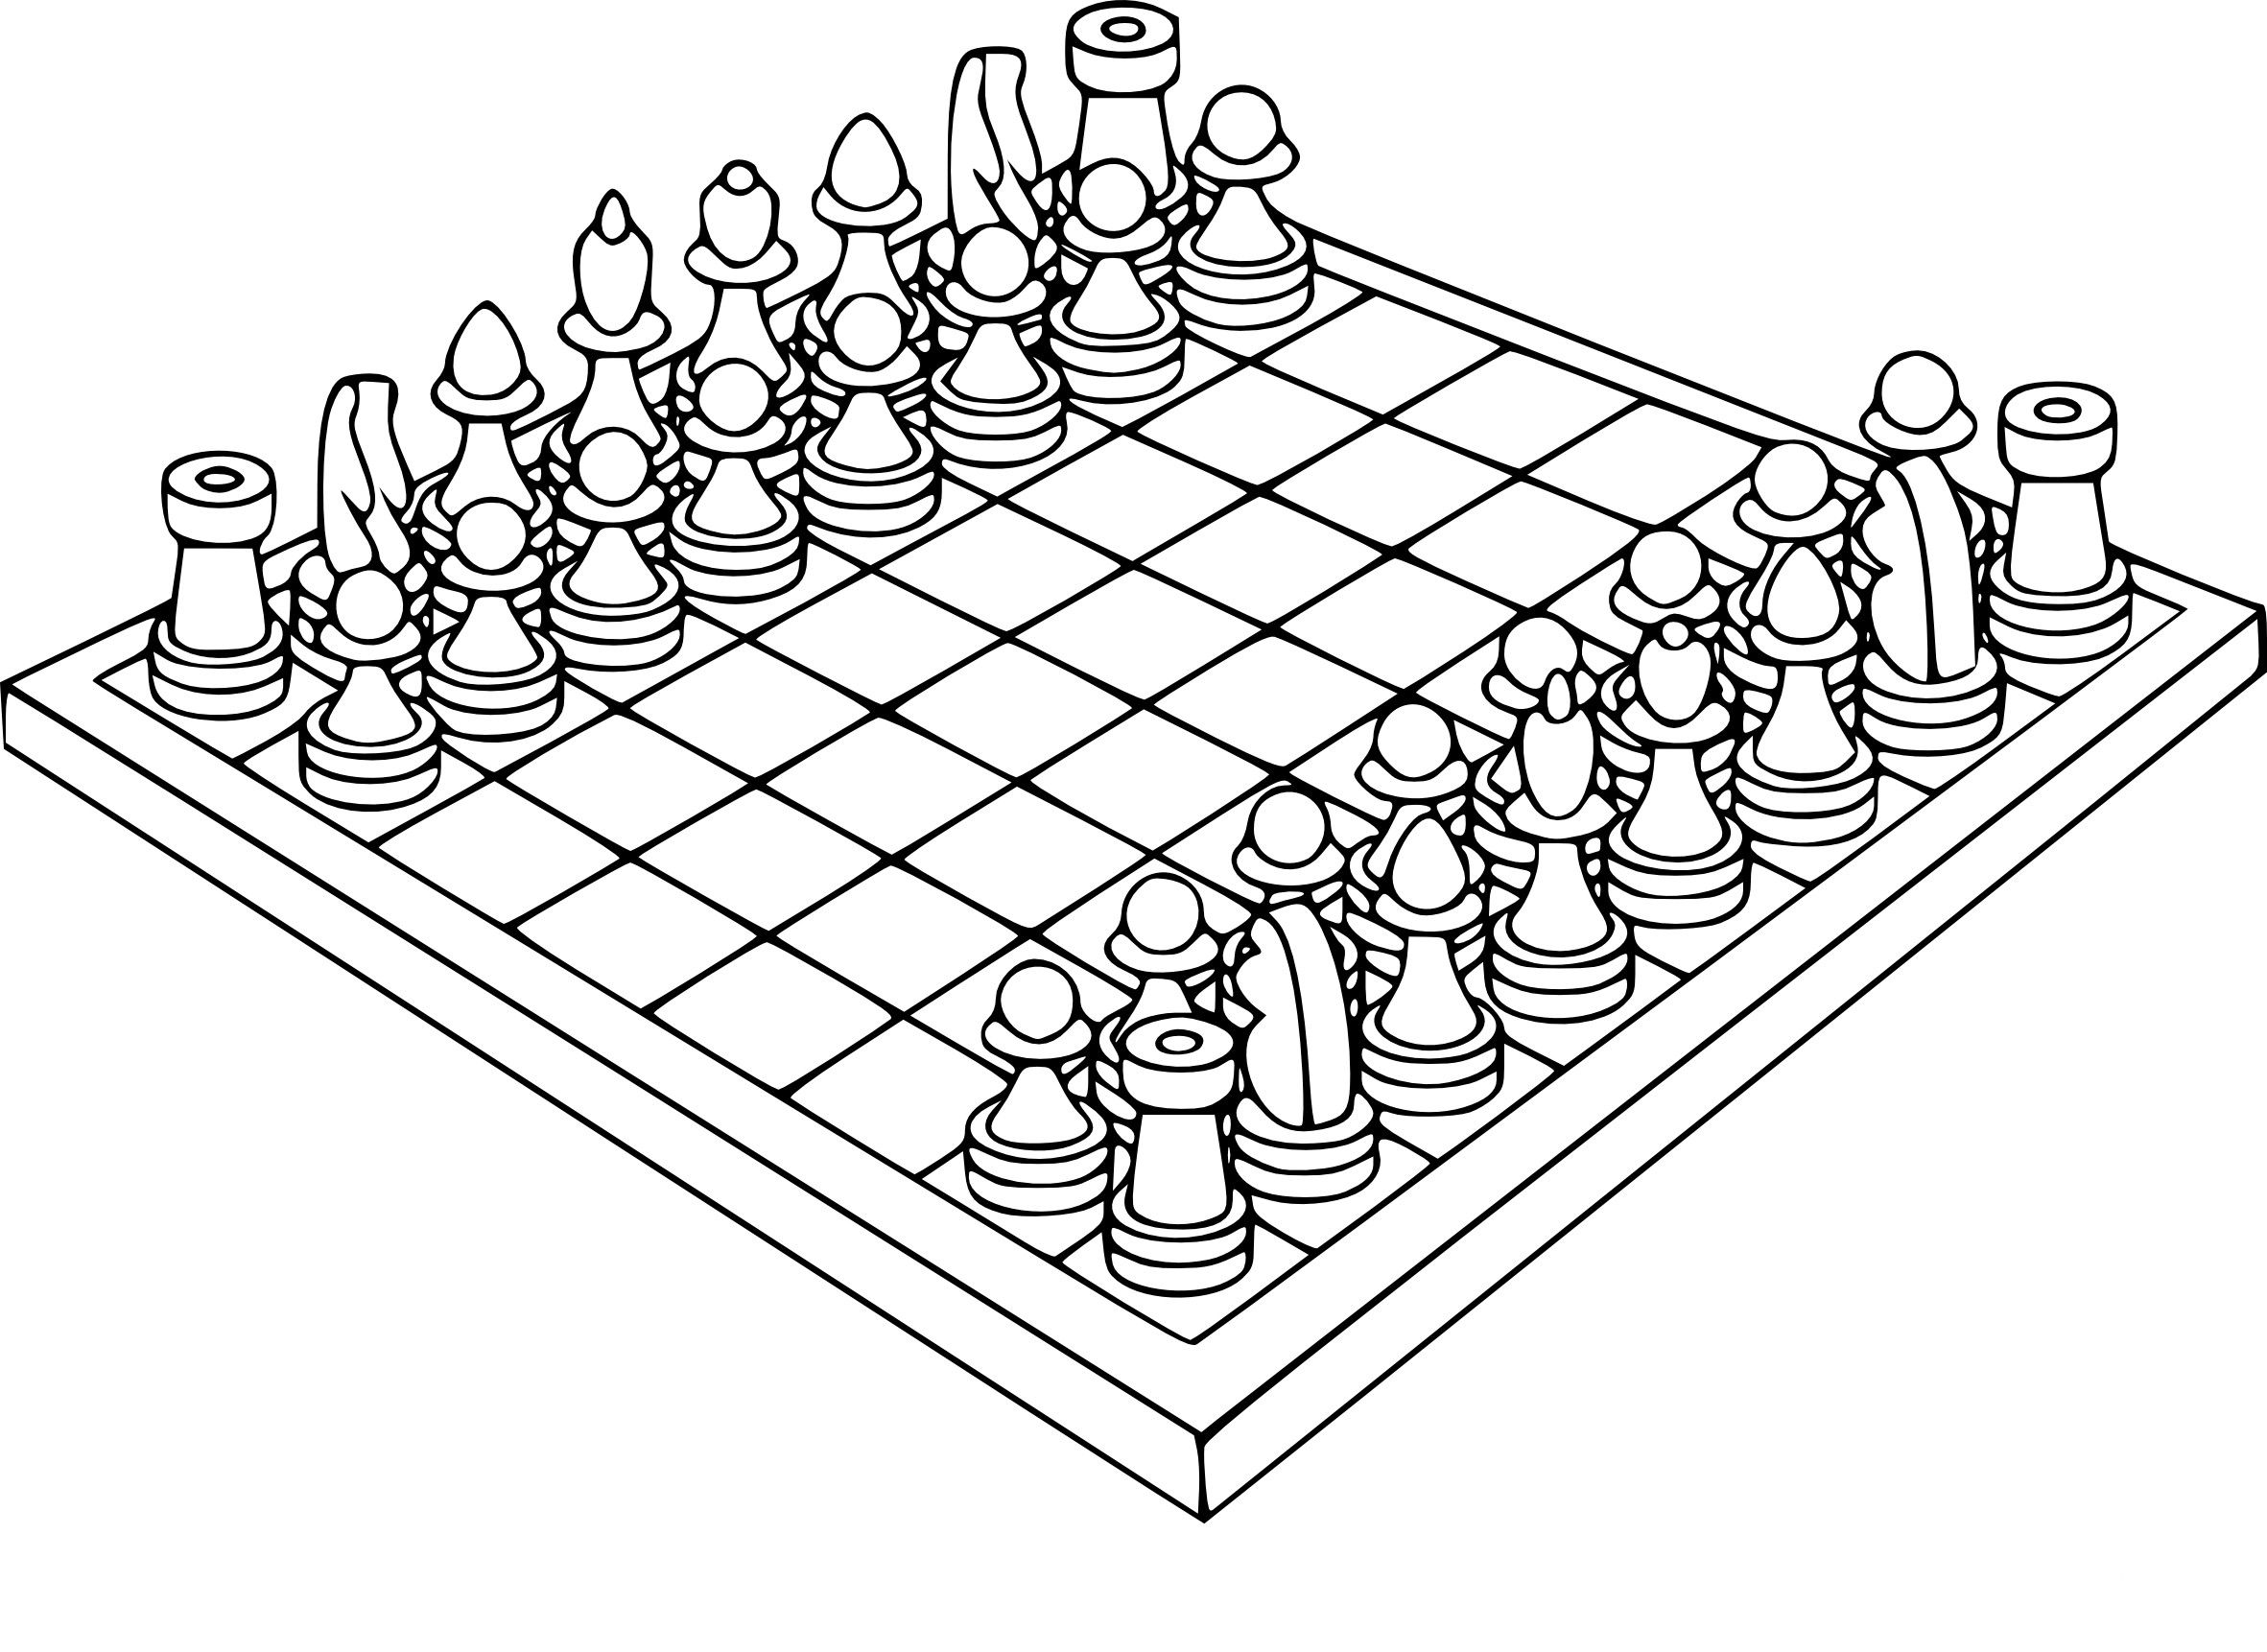 chess coloring pages | Coloring Chess game print | Adult Coloring Pages *The BEST ...